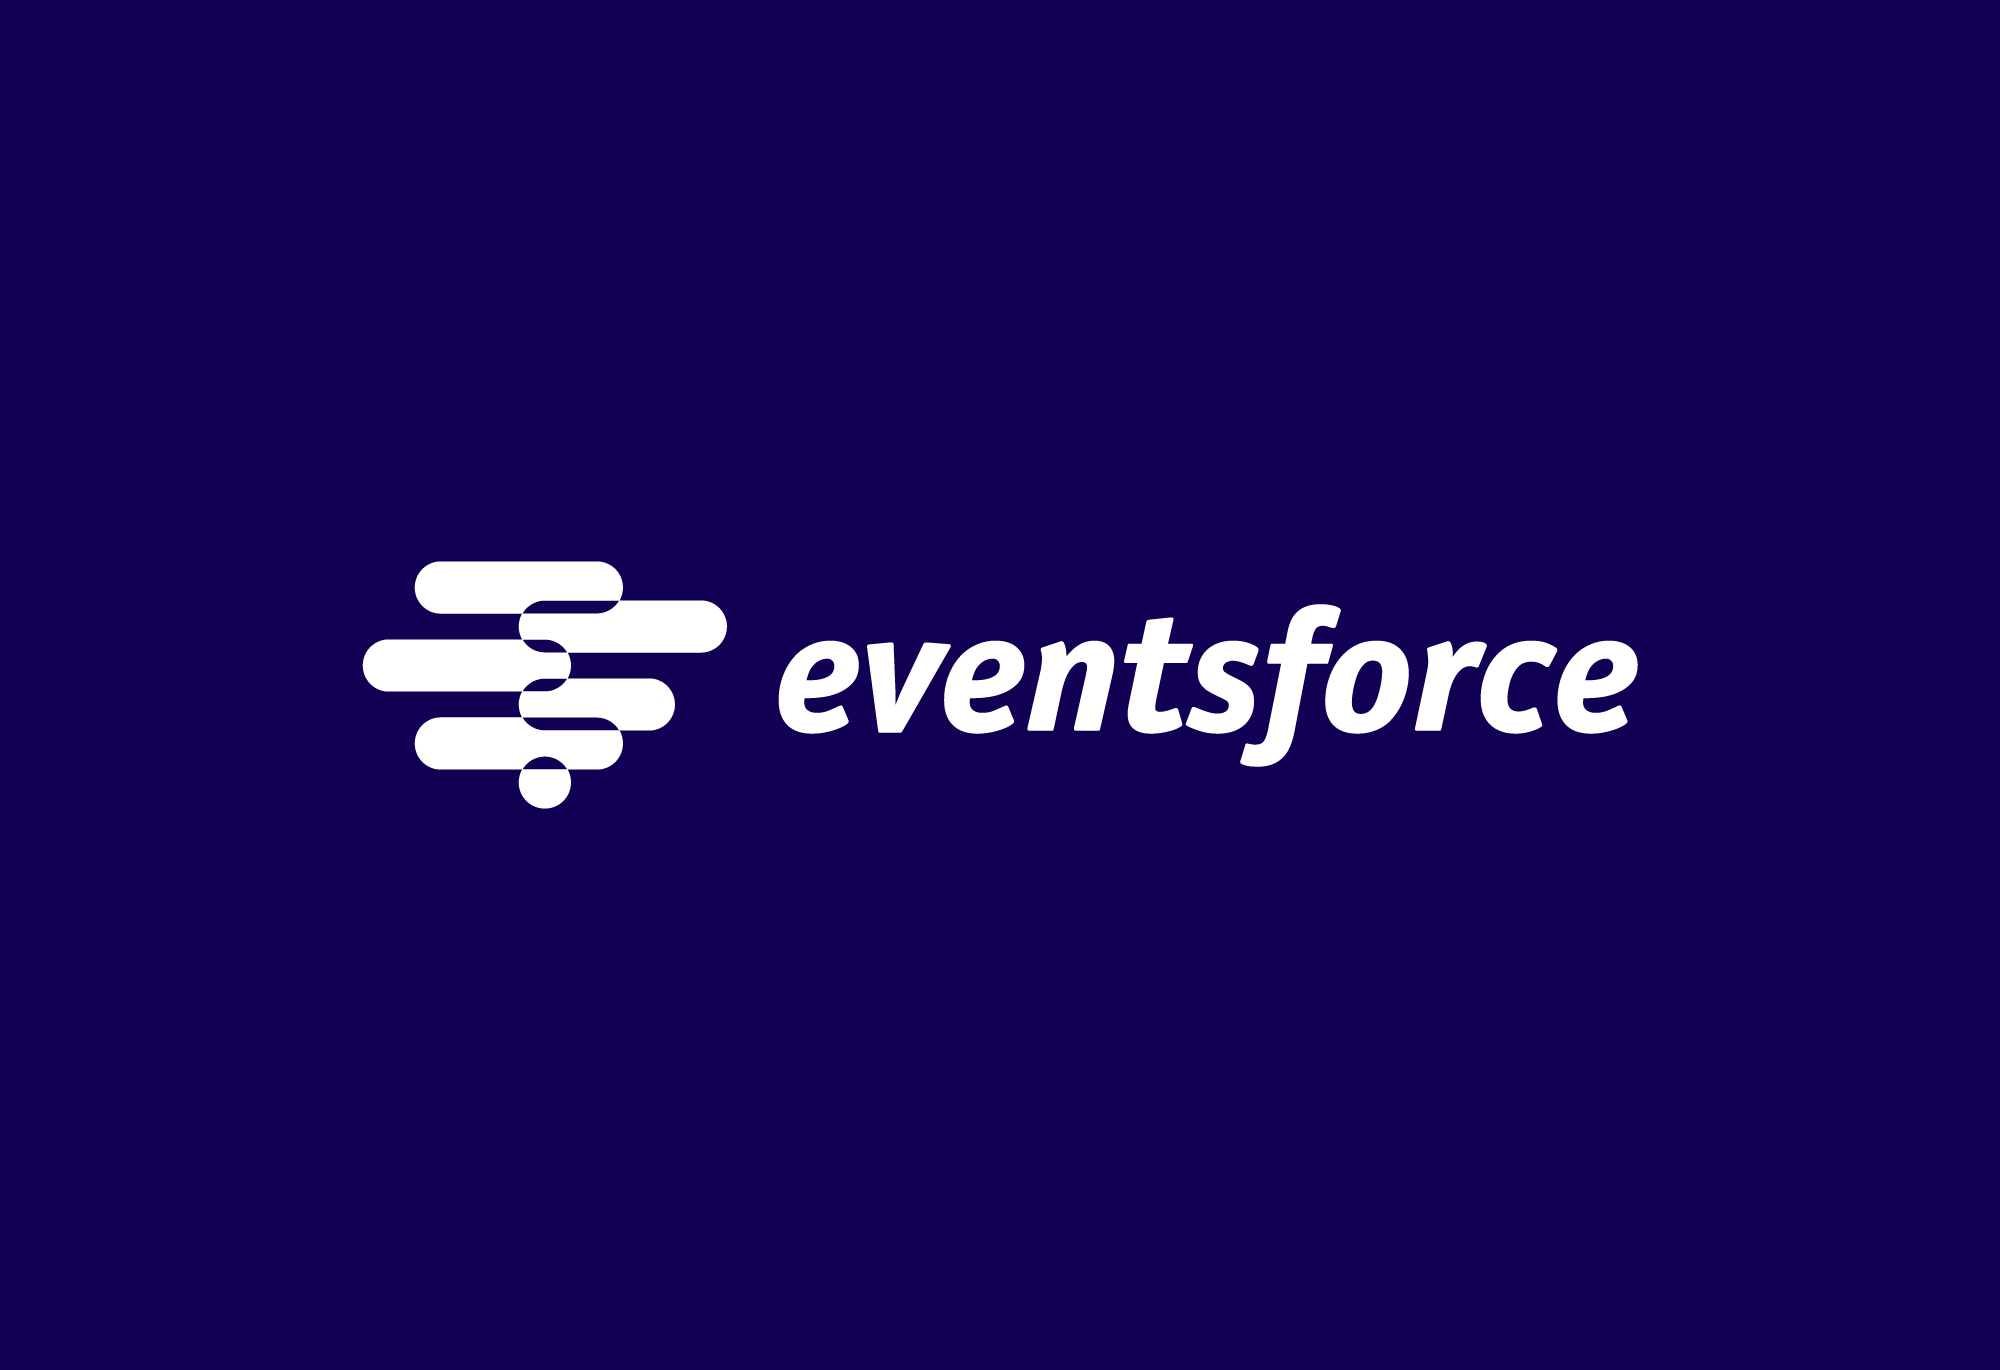 Eventsforce.com Identity Design